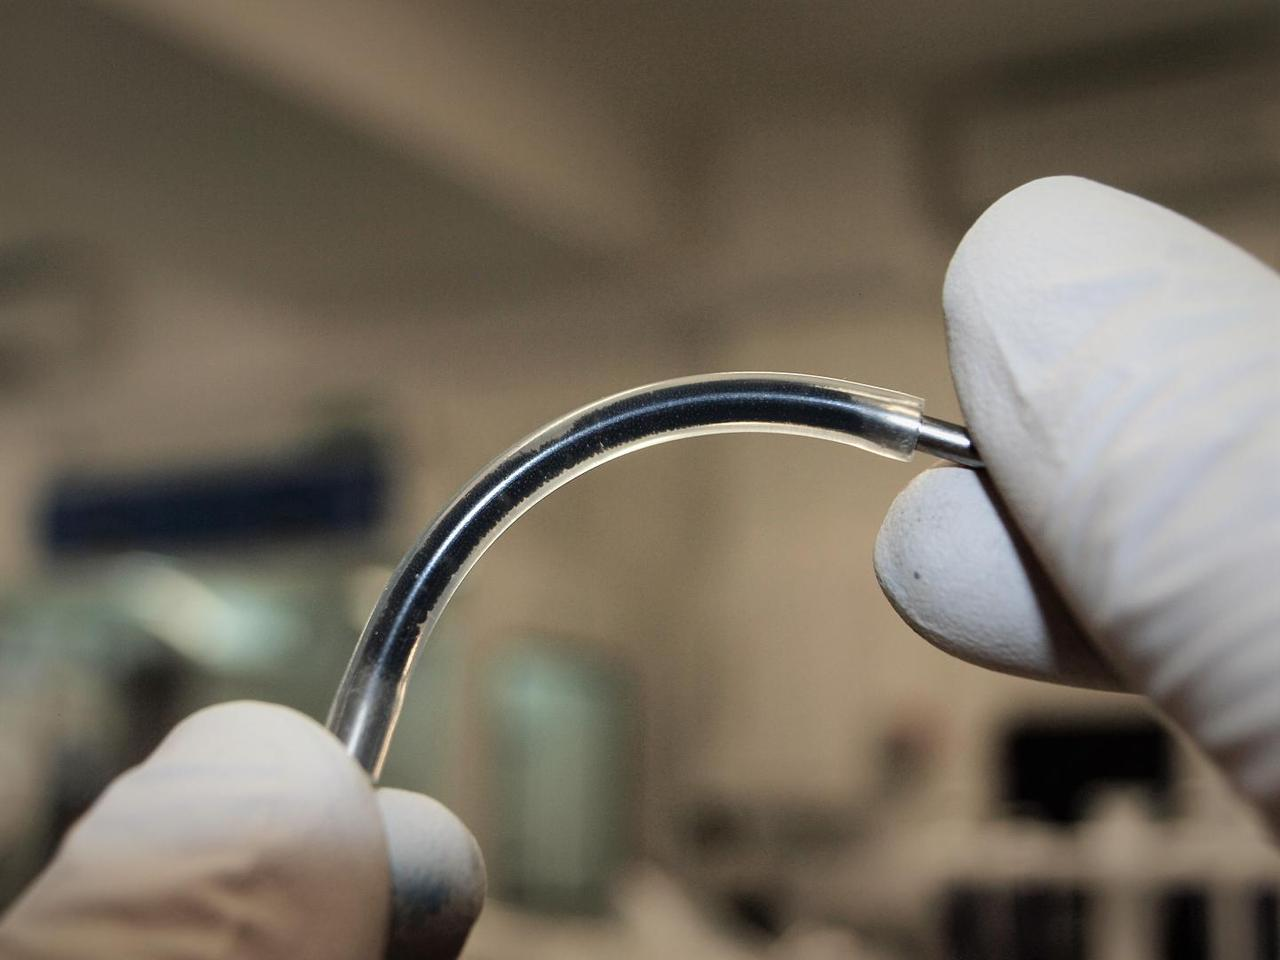 A flexible tube, filled with an emulsion of water, oil and graphene